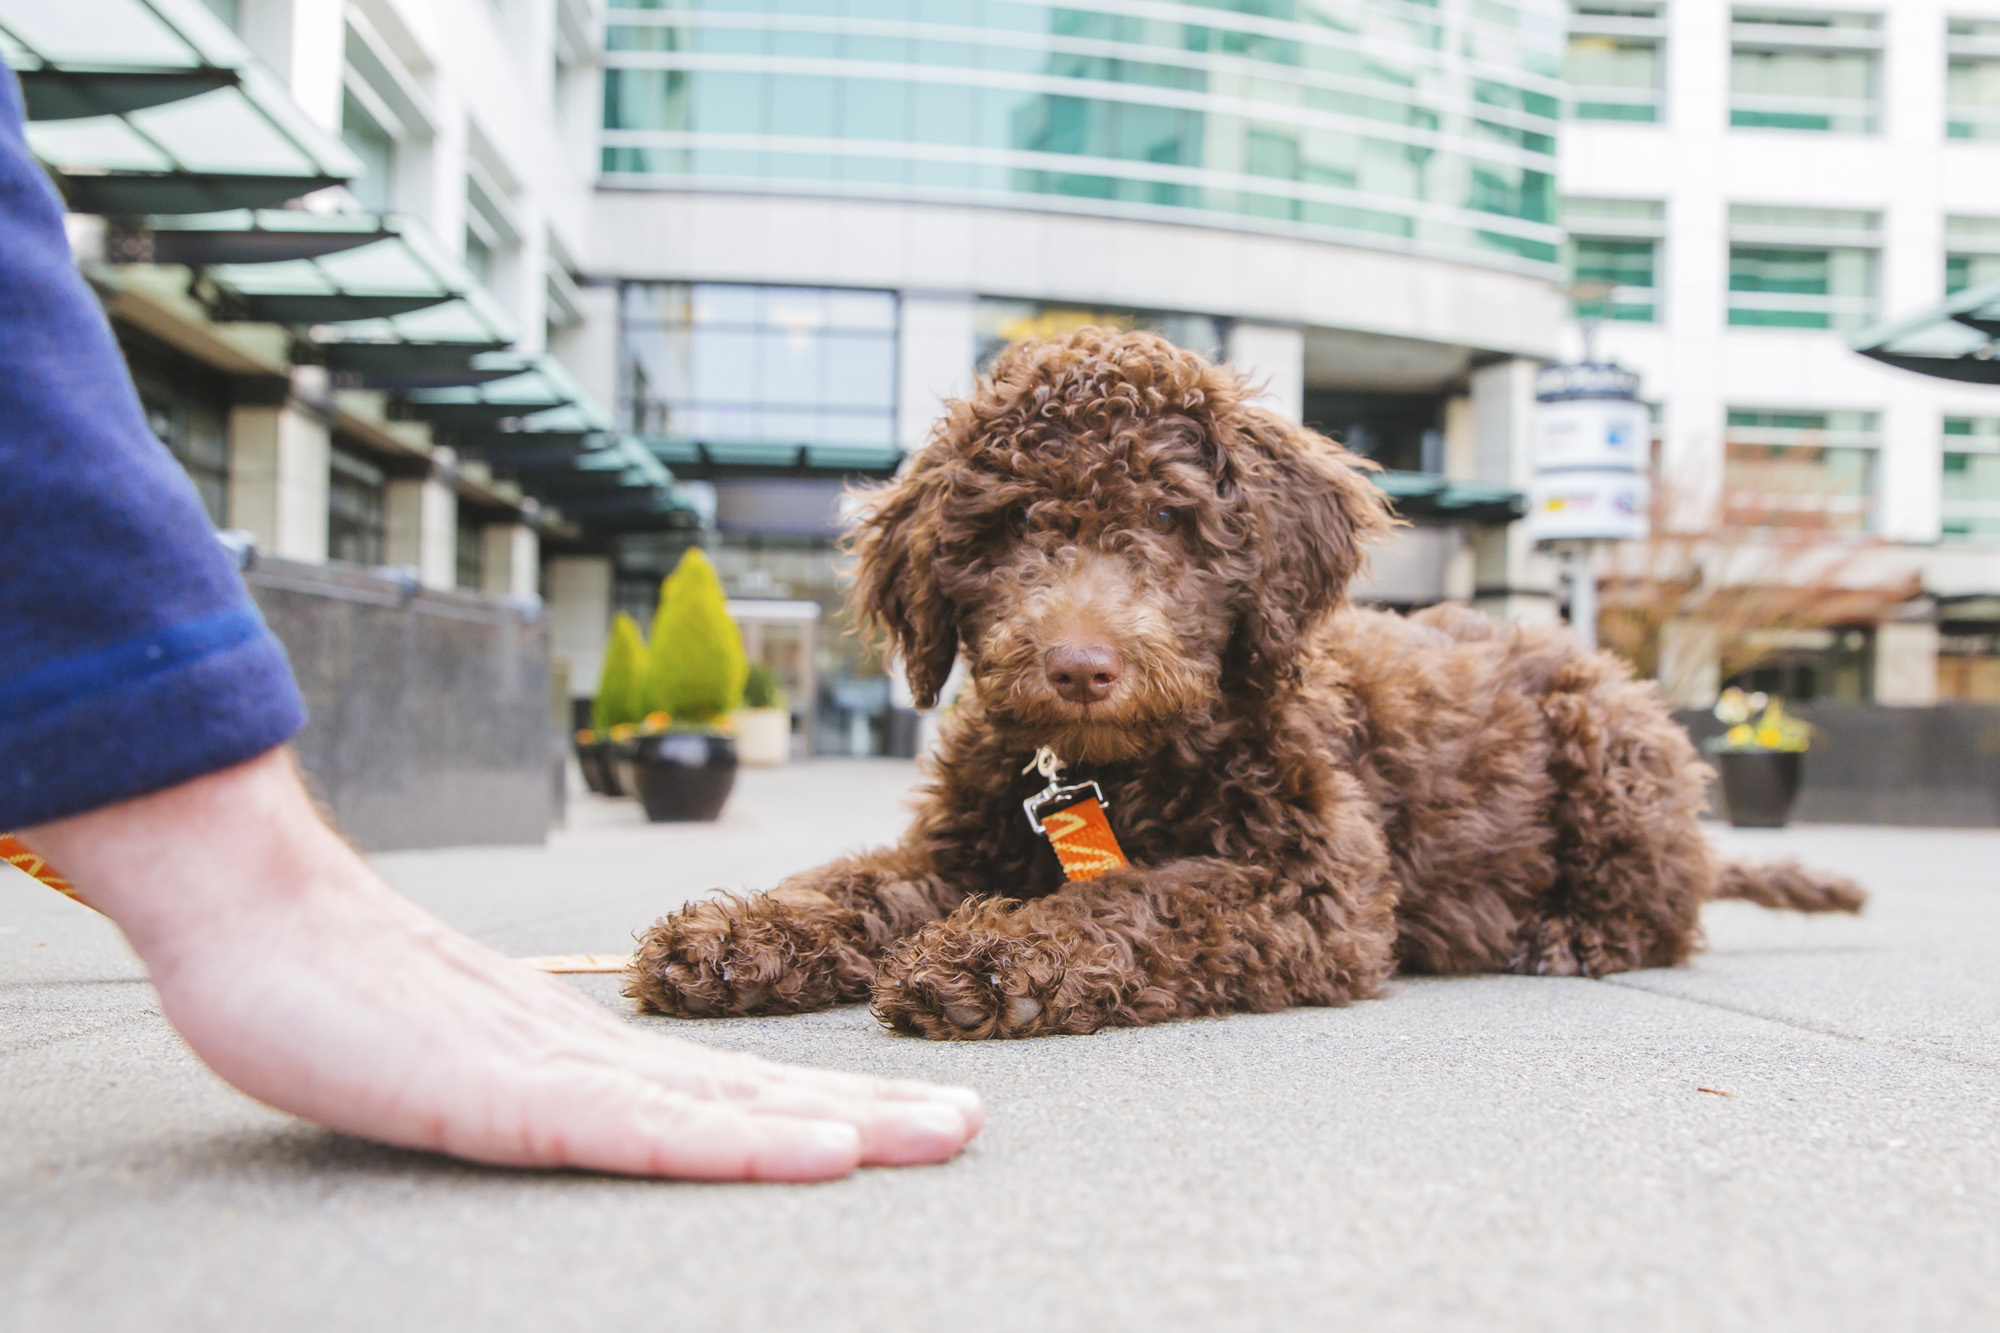 Timber is a new addition to our KOMO family! He is a 3.5 month old Goldendoodle who has lots of high energy and requires lots of attention. He loves meeting new people, making them happy and gives lots of love and attention. He likes people, interactive toys, tug of war and treats. He dislikes car rides because he gets sick every time in the car.{ }The Seattle RUFFined Spotlight is a weekly profile of local pets living and loving life in the PNW. If you or someone you know has a pet you'd like featured, email us at hello@seattlerefined.com or tag #SeattleRUFFined and your furbaby could be the next spotlighted! (Image: Sunita Martini / Seattle Refined).